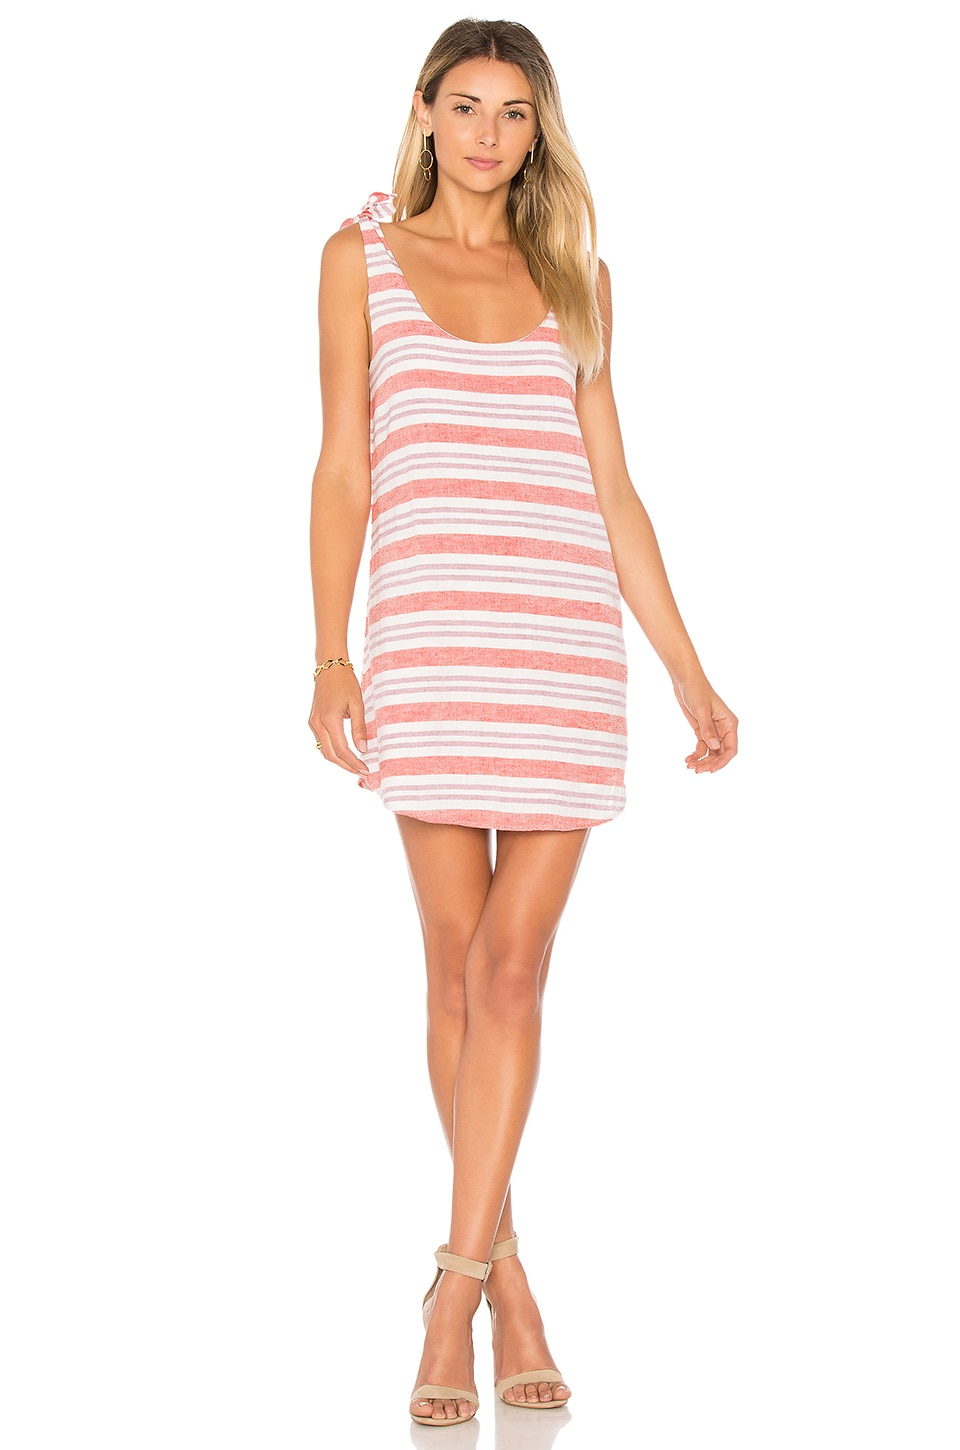 Lovers + Friends Everglades Dress in Berry Stripe